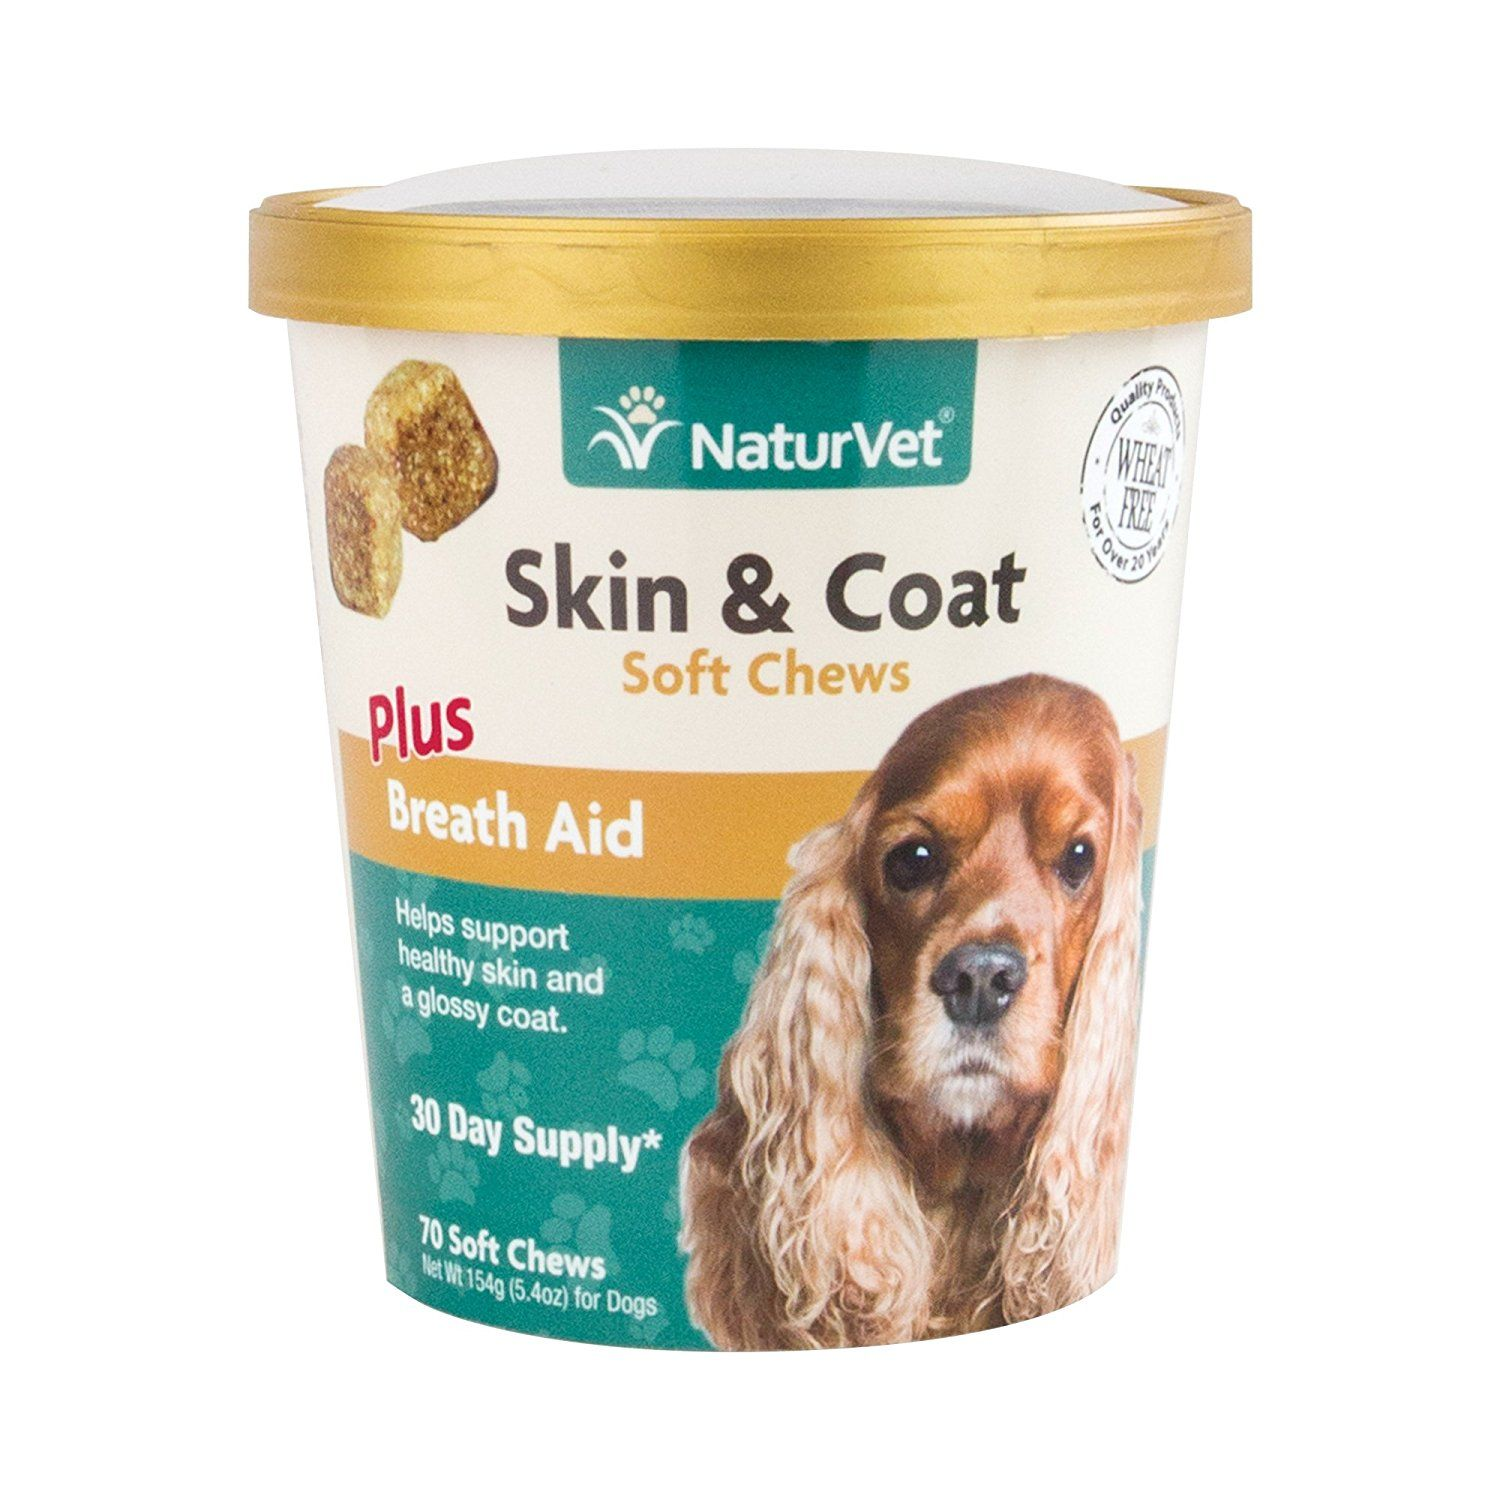 NaturVet Skin and Coat Plus Breath Aid for Dogs, 70 ct